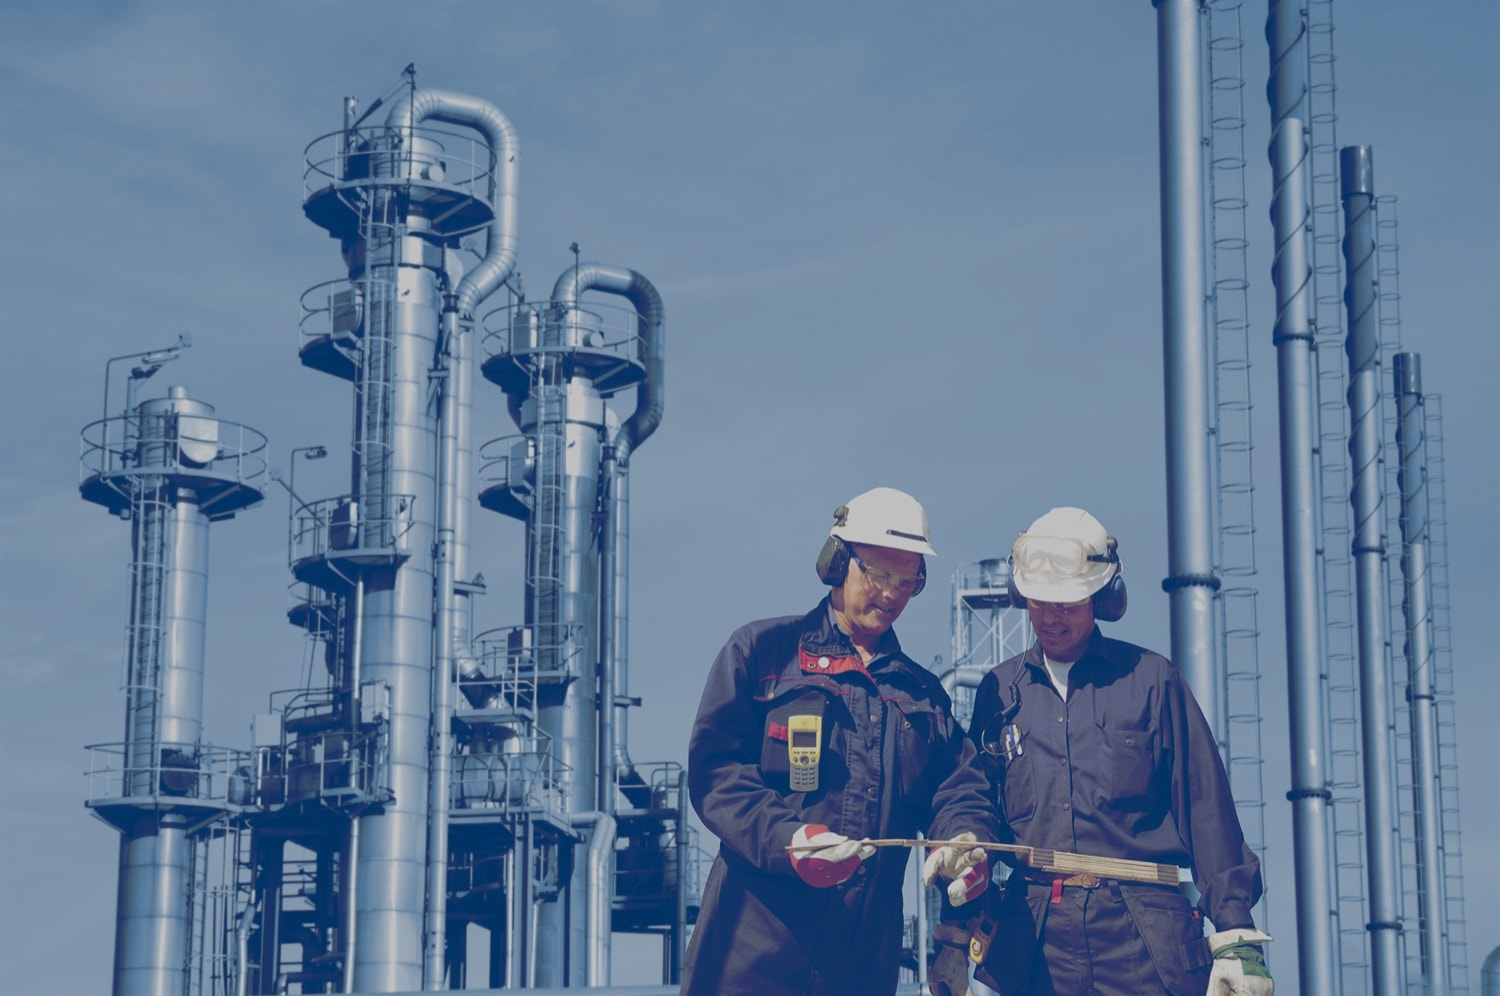 Two workers in an oil field with a refinery in the background.